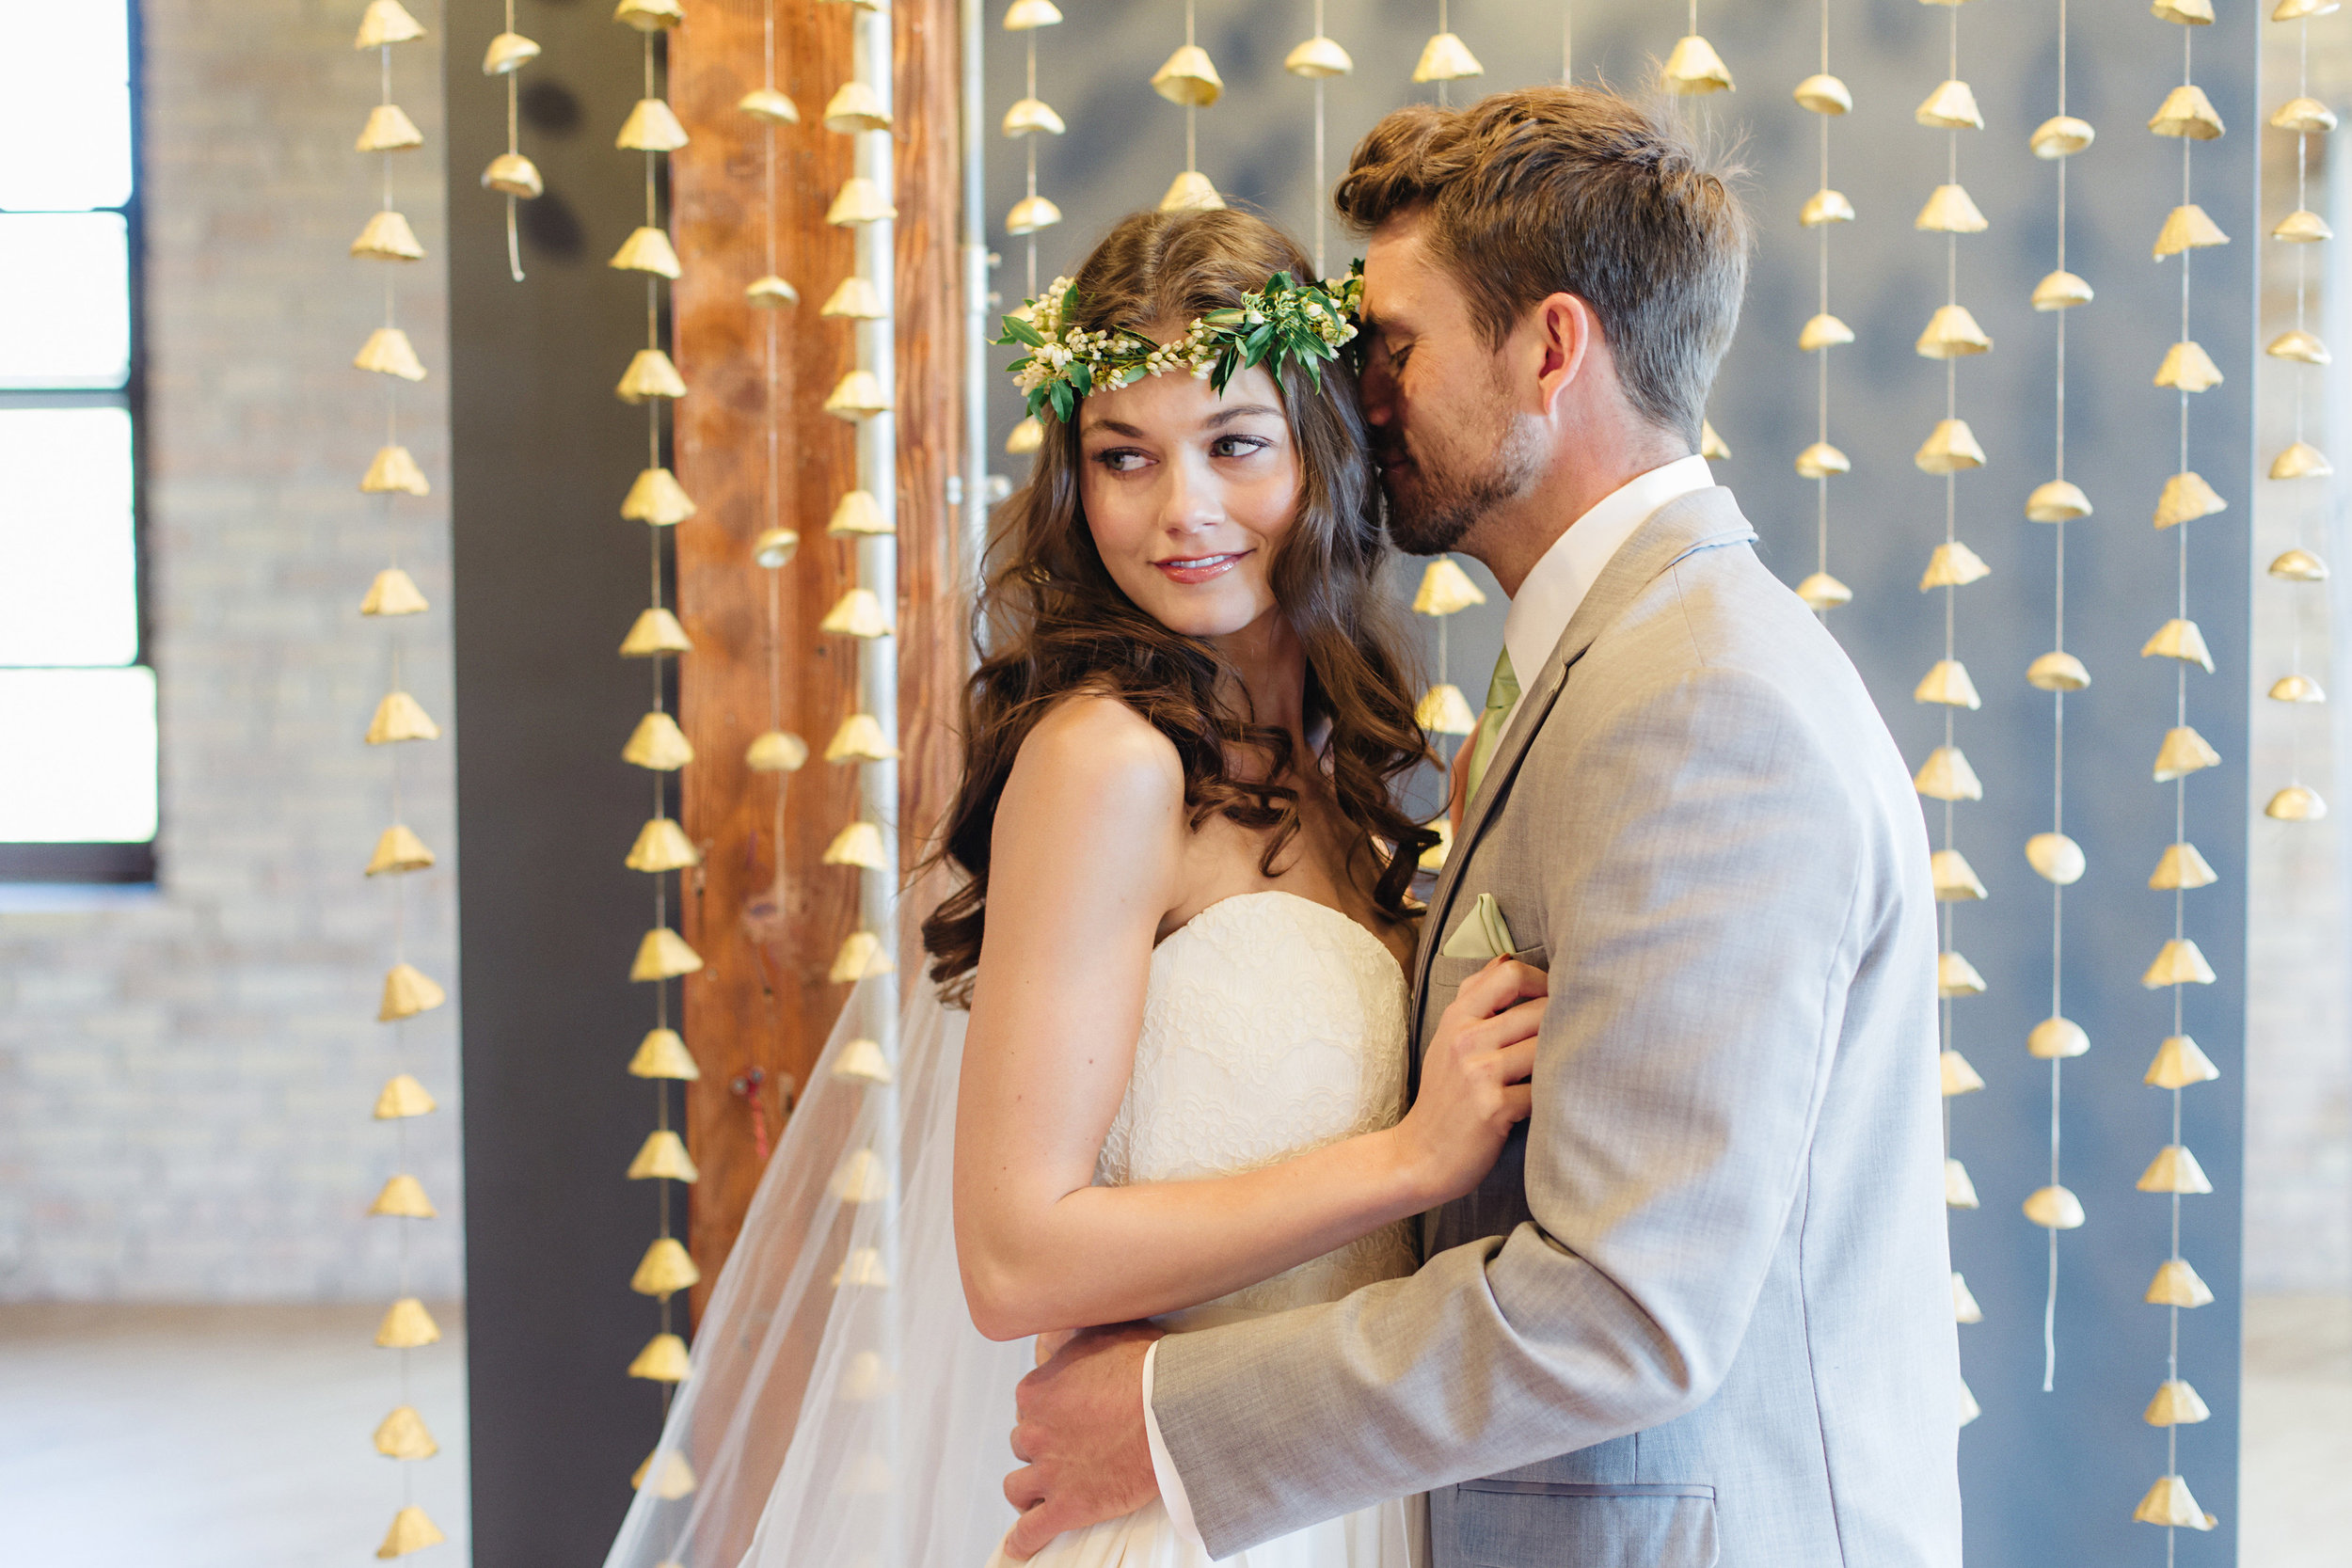 Vendors: Photography: Jody Savage Photography | Videography: Acowsay | Groomswear: Savvy Formalwear | Dress: Natalie by  Truvelle , A and B Bridal Shop | Makeup: Julie Swenson Beauty | Hair: Teanna Moye Artistry | Venue: Solar Arts   Chowgirls | Rentals & Design: On Solid Ground Vintage Rentals | Floral Design: Studio Fleurette | Florals: Fifty Flowers | Cake Topper, Custom Lettering, Escort+Place Cards: Splendid Supply Co. | Cake Stands, Guest Book + Invites: Minted | Food + Cake: Chow Girl Catering